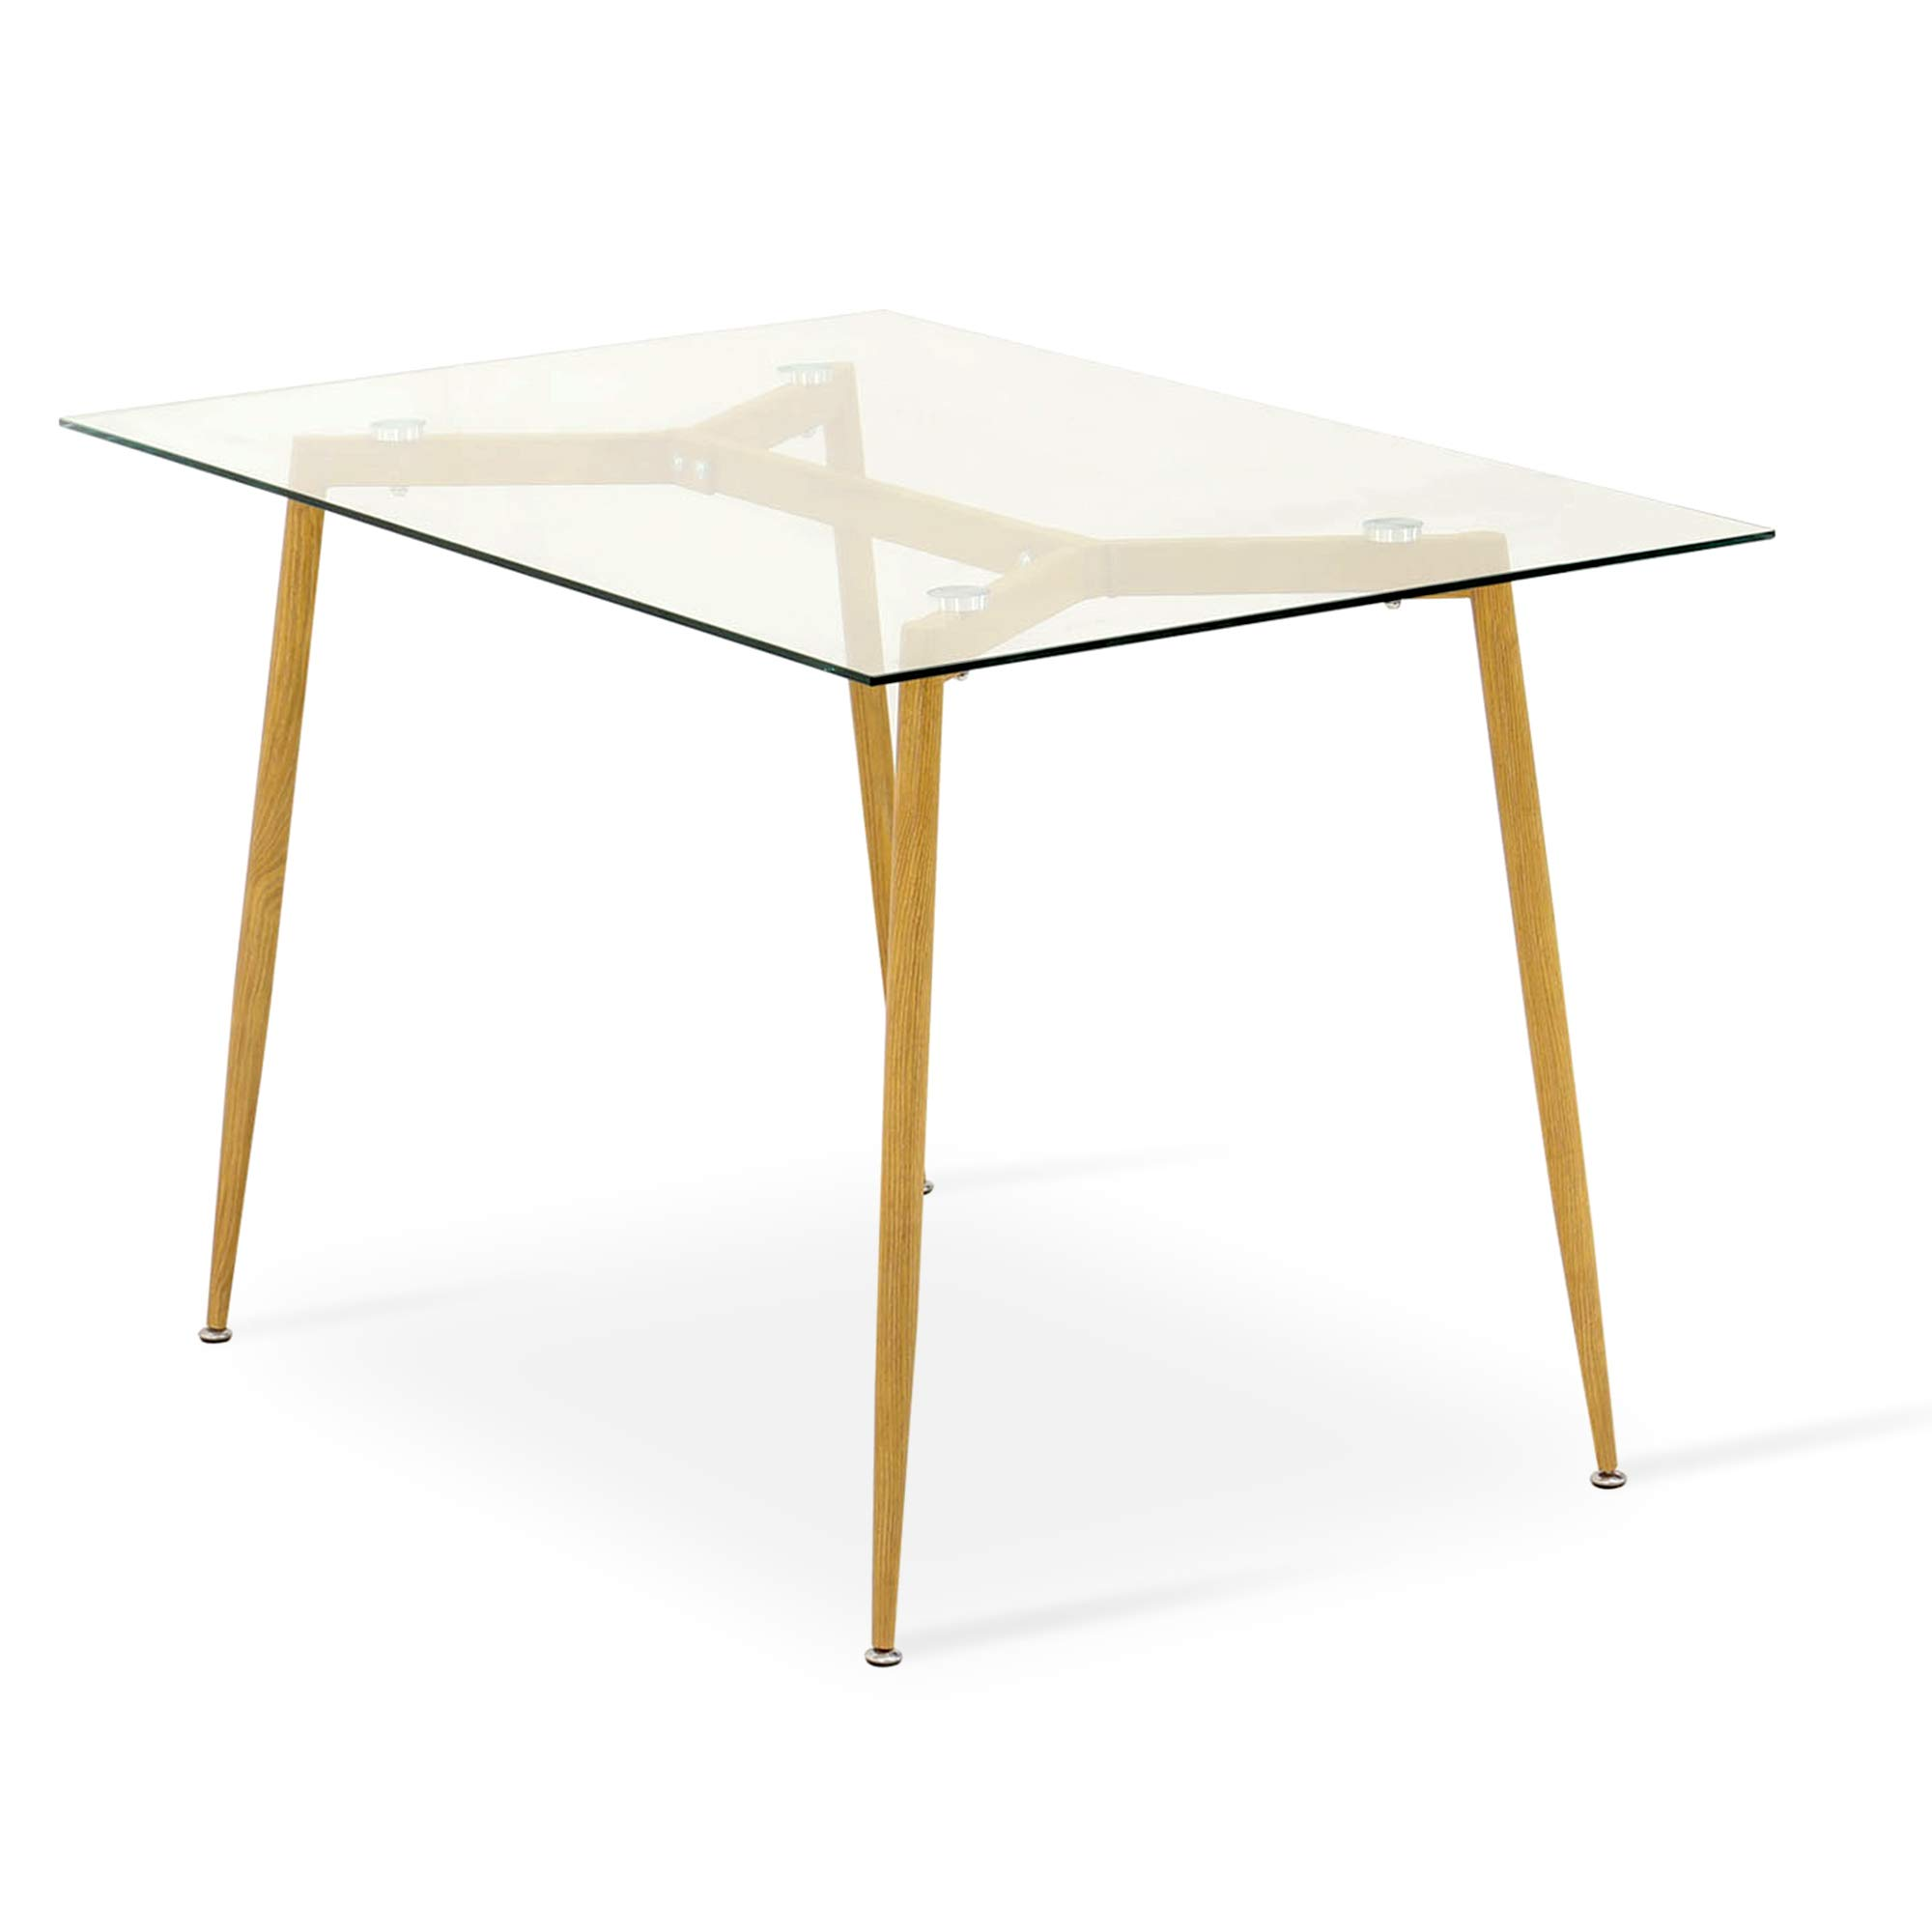 Ivinta Kitchen Modern Glass Rectangular Dining Table 48'' x 32'' for 4/6 with Foot pad for Dining Room Mid-Century Leisure Office Table Wooden Skin by Ivinta